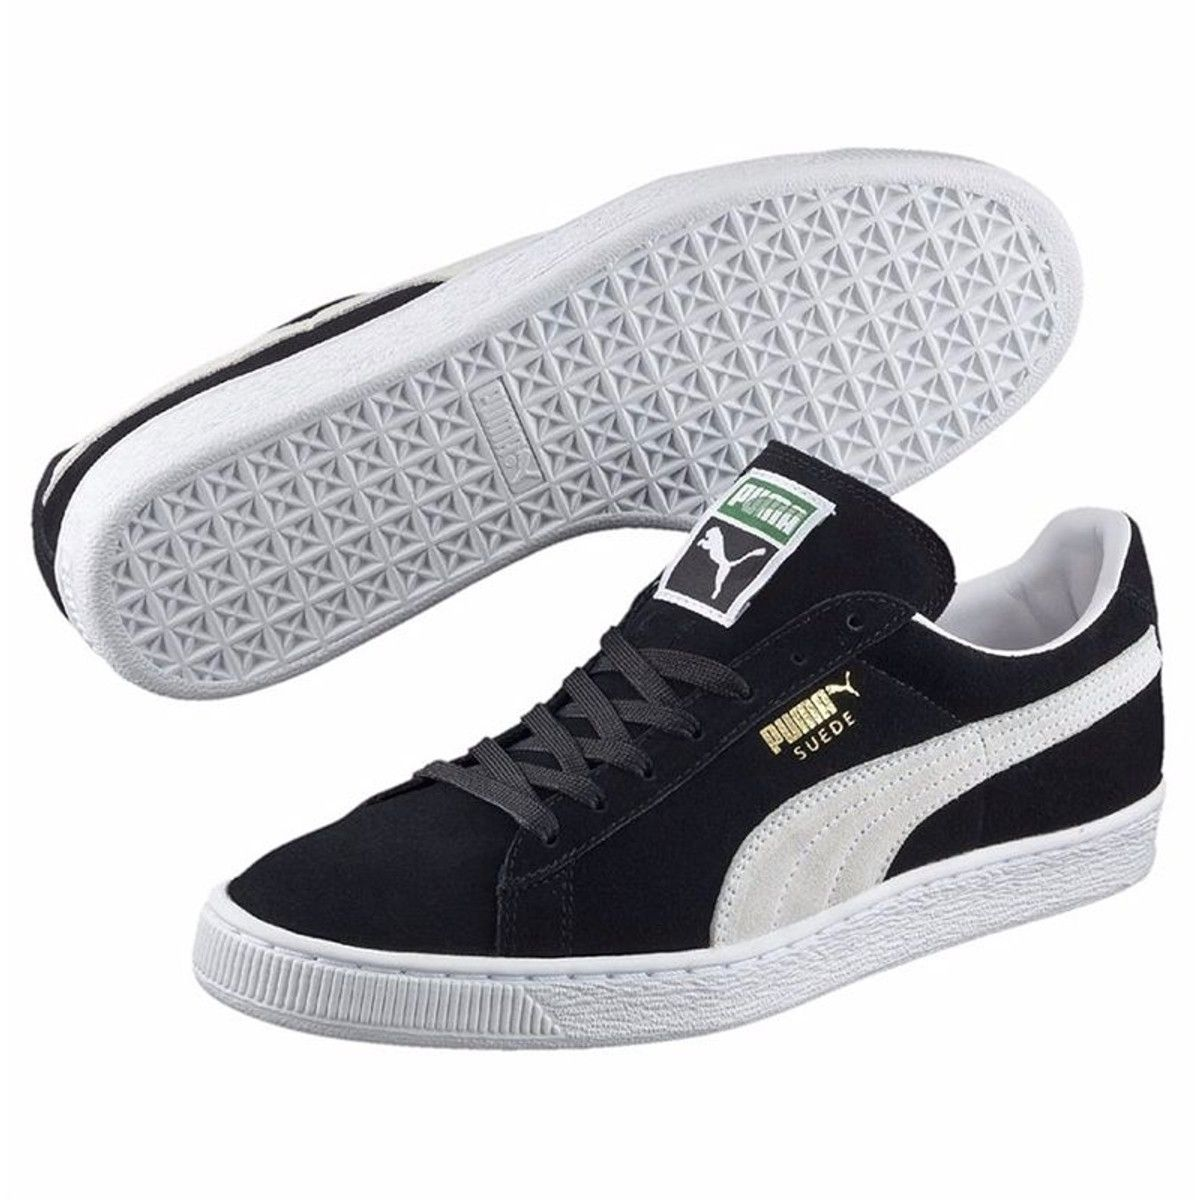 puma homme toile